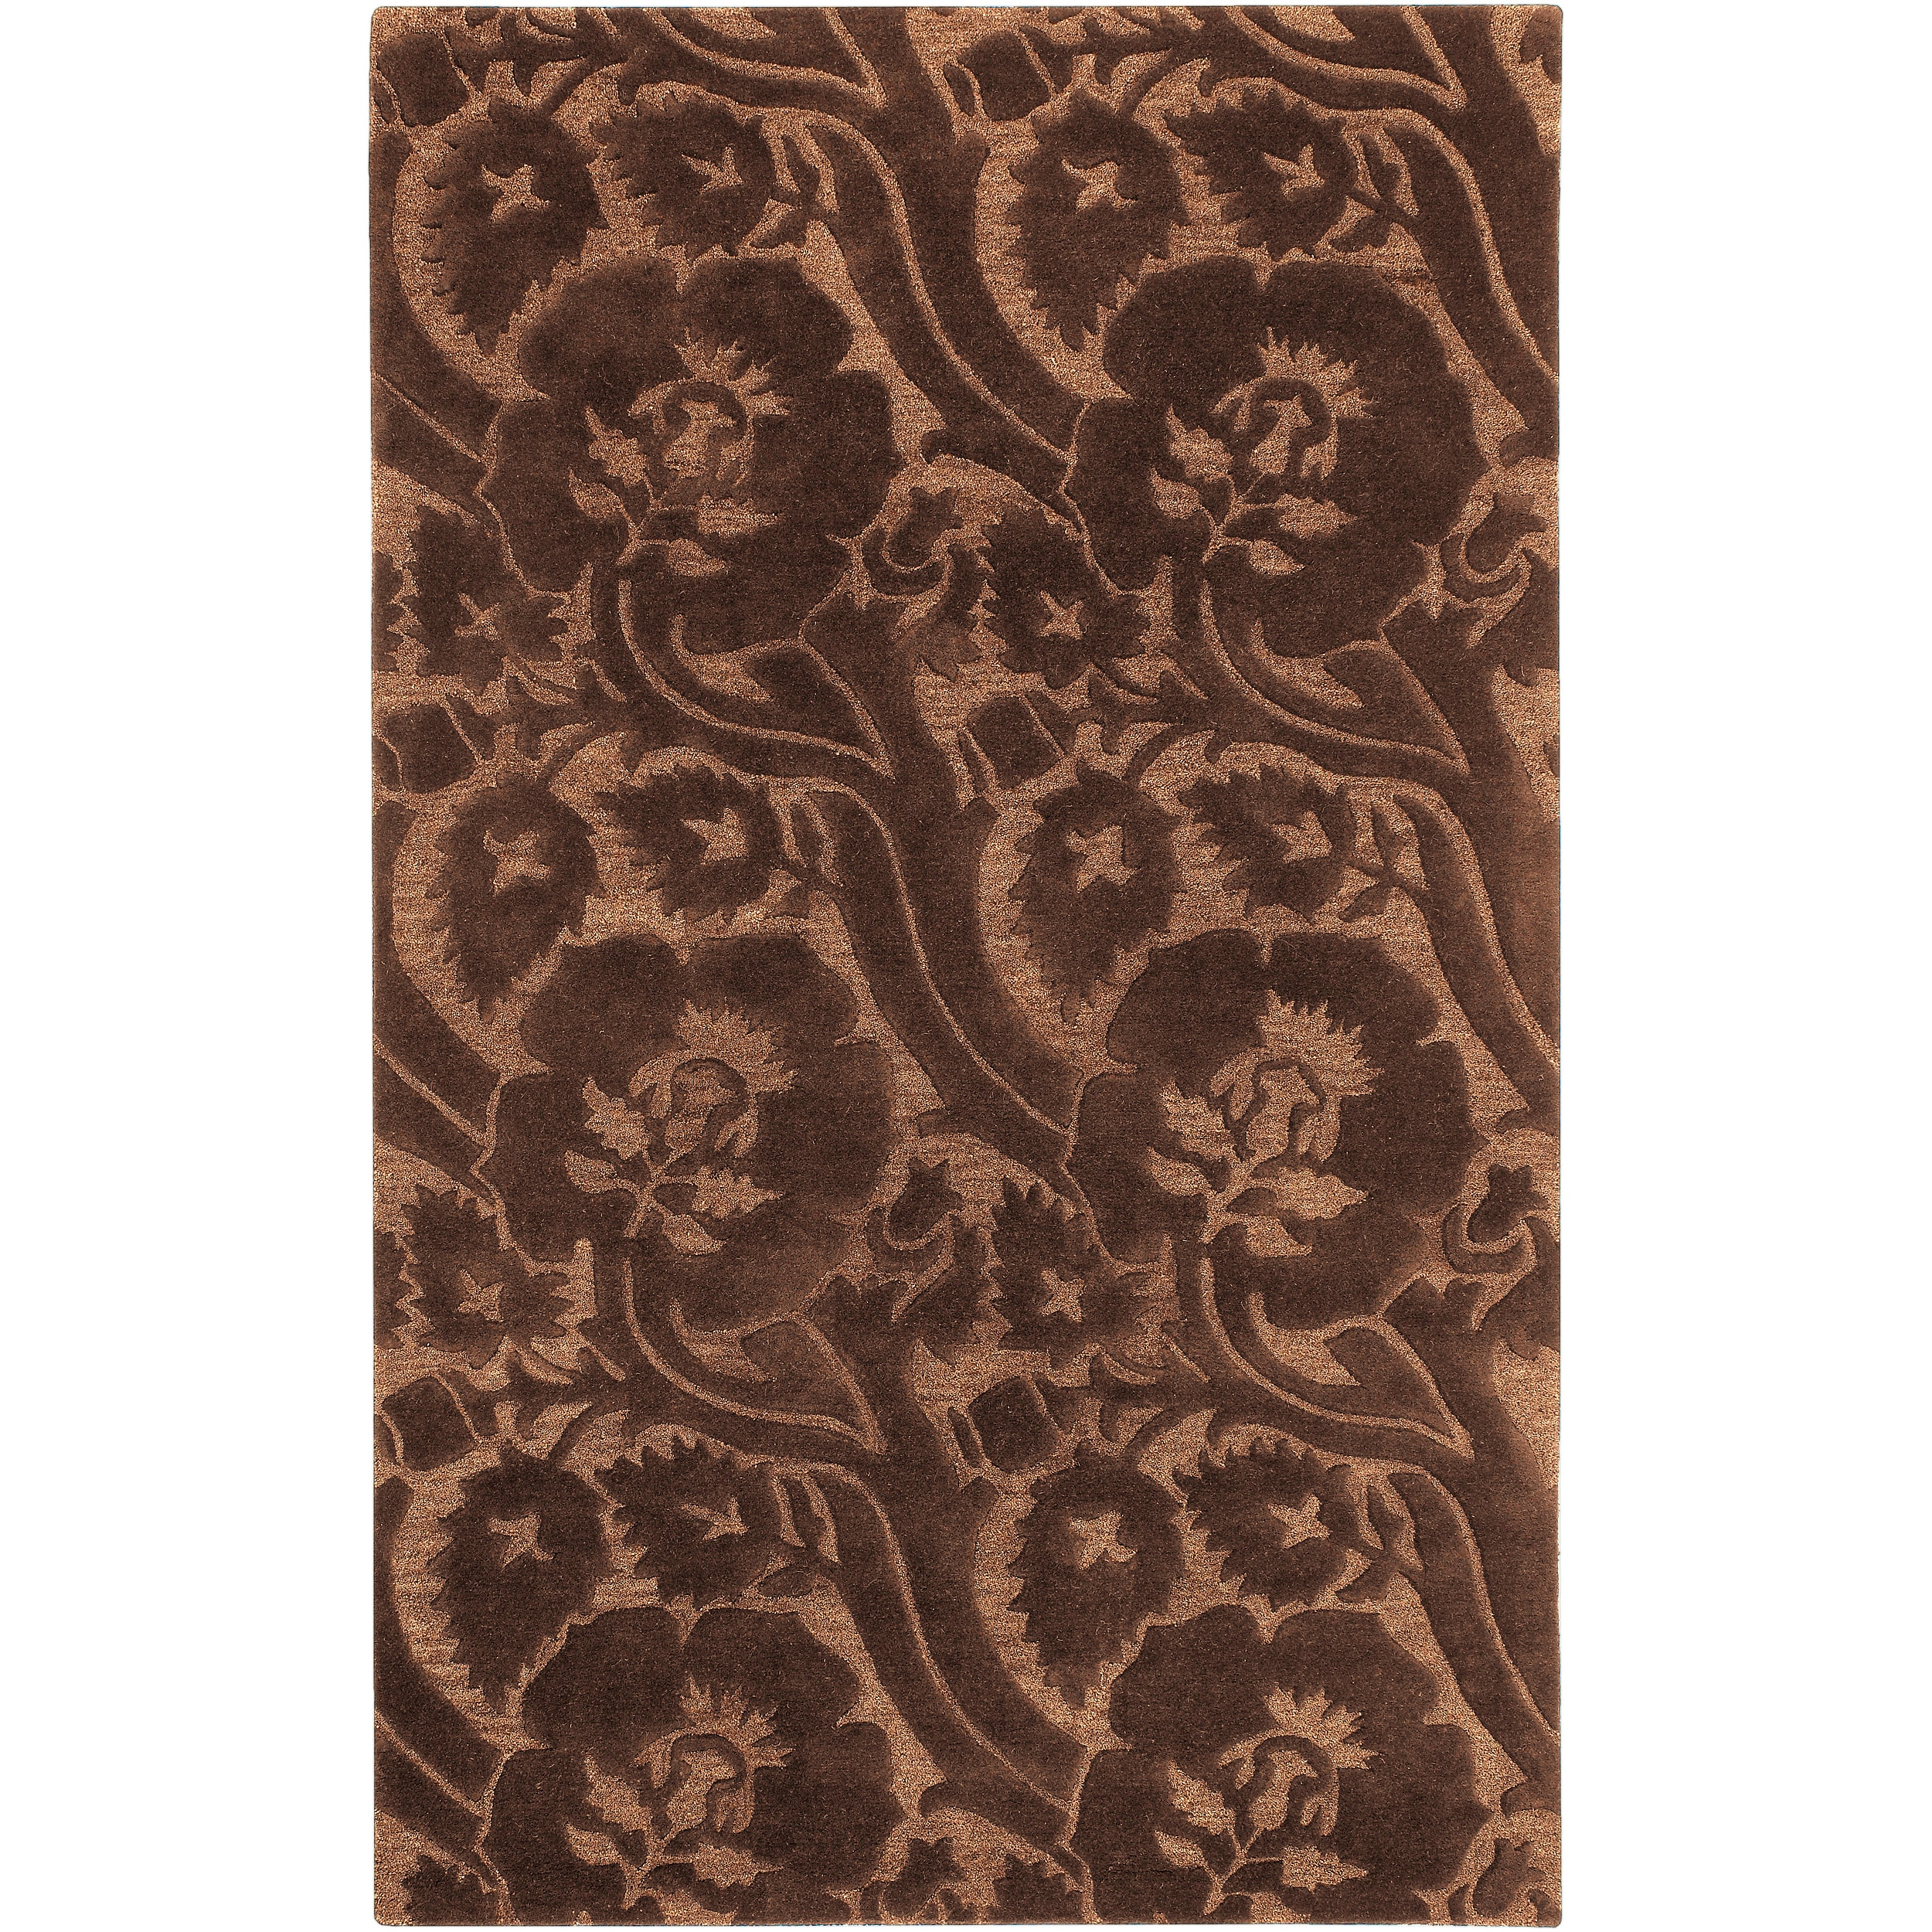 Hand Tufted Brown Natalie New Zealand Wool Rug (3'3 x 5'3)